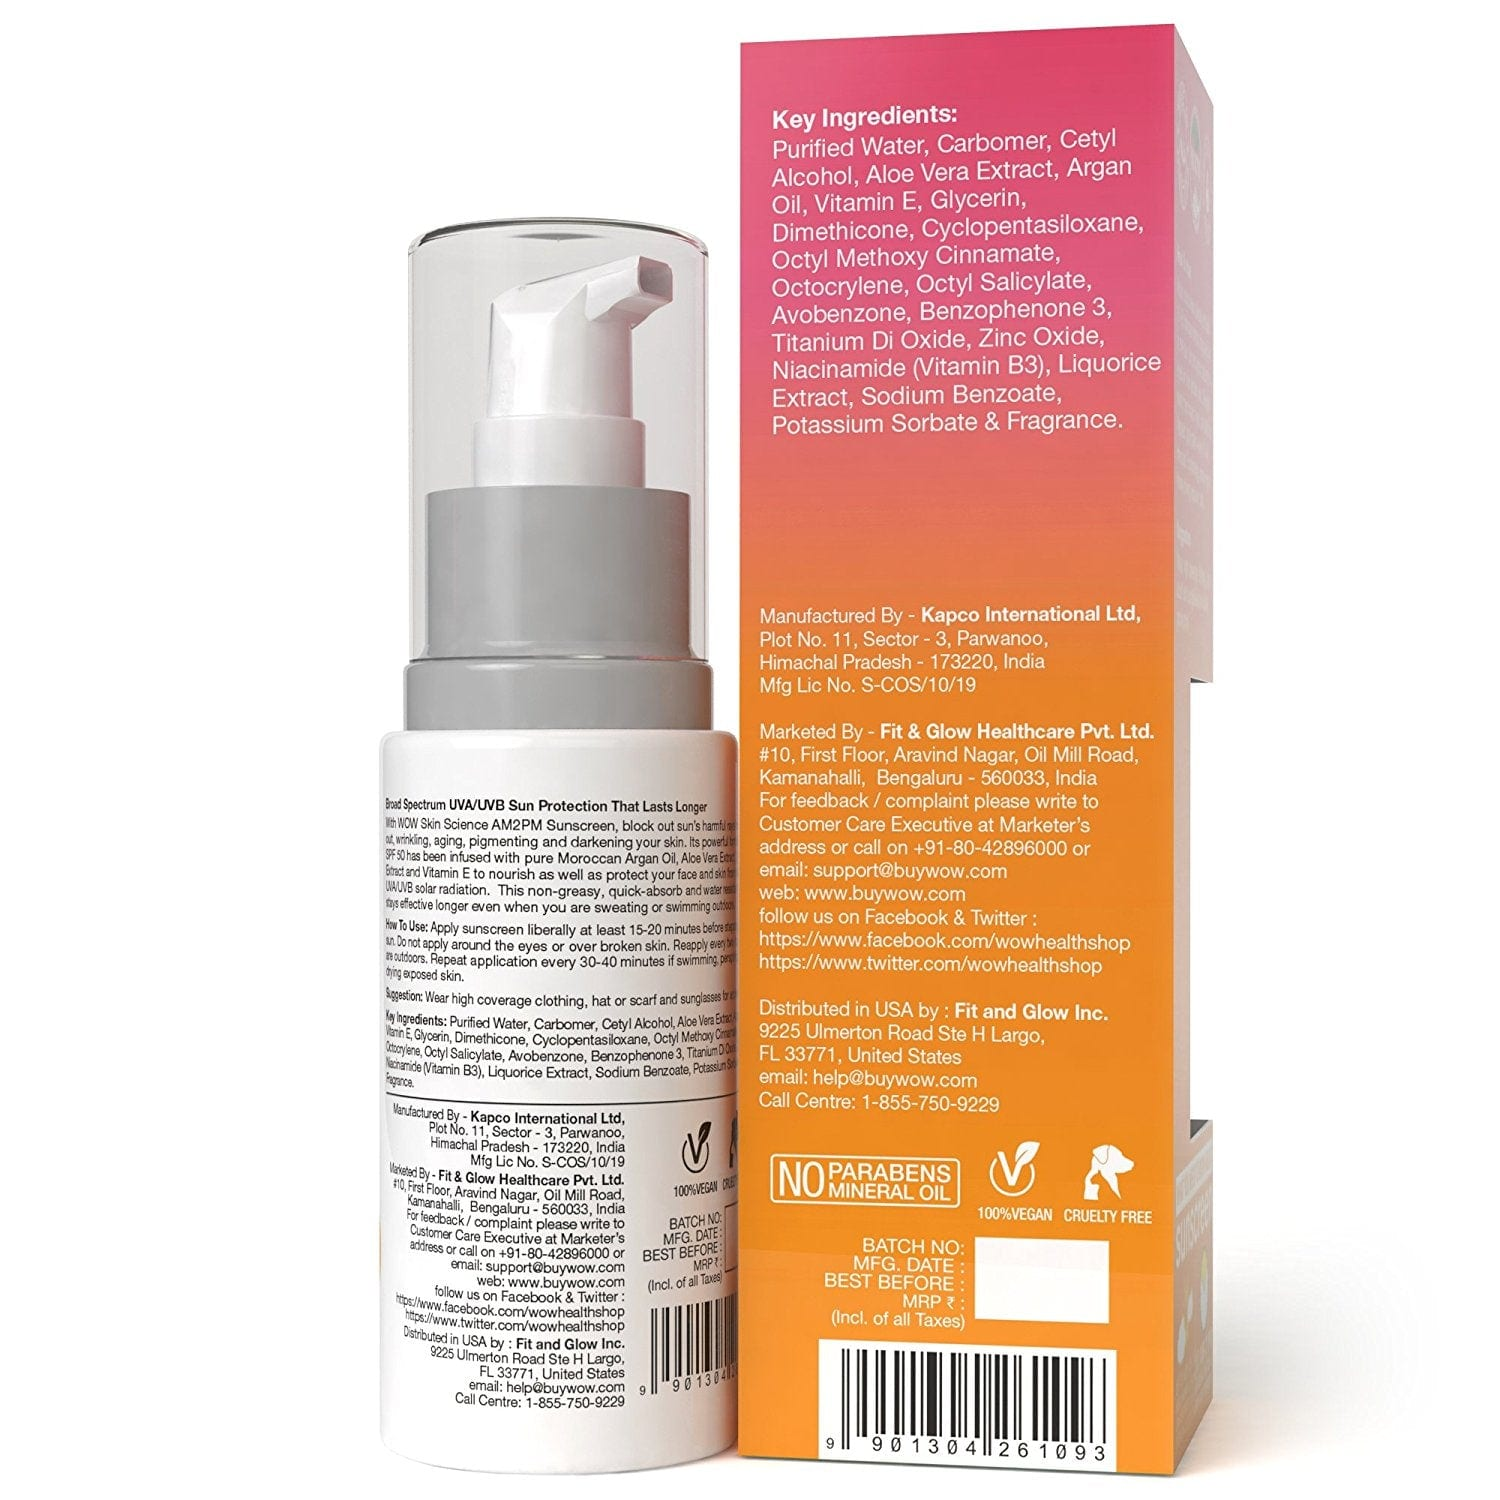 WOW Skin Science AM2PM Sunscreen SPF-50 - 100 ml - BuyWow